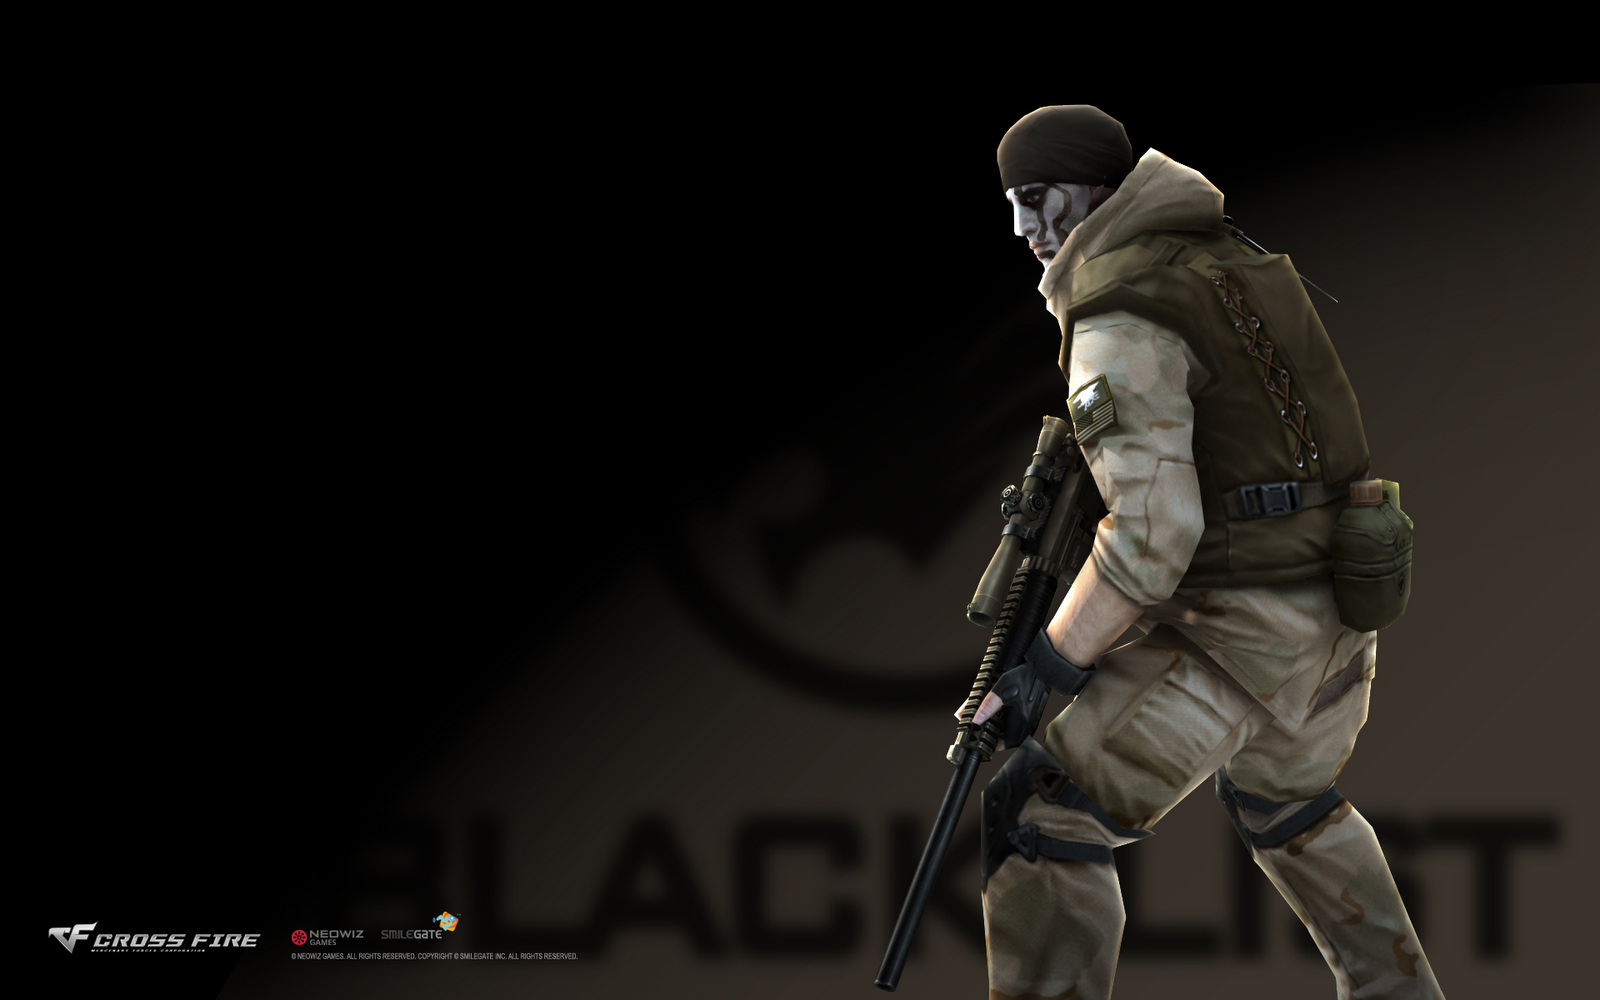 wallpaper crossfire collection 2011 - photo #22